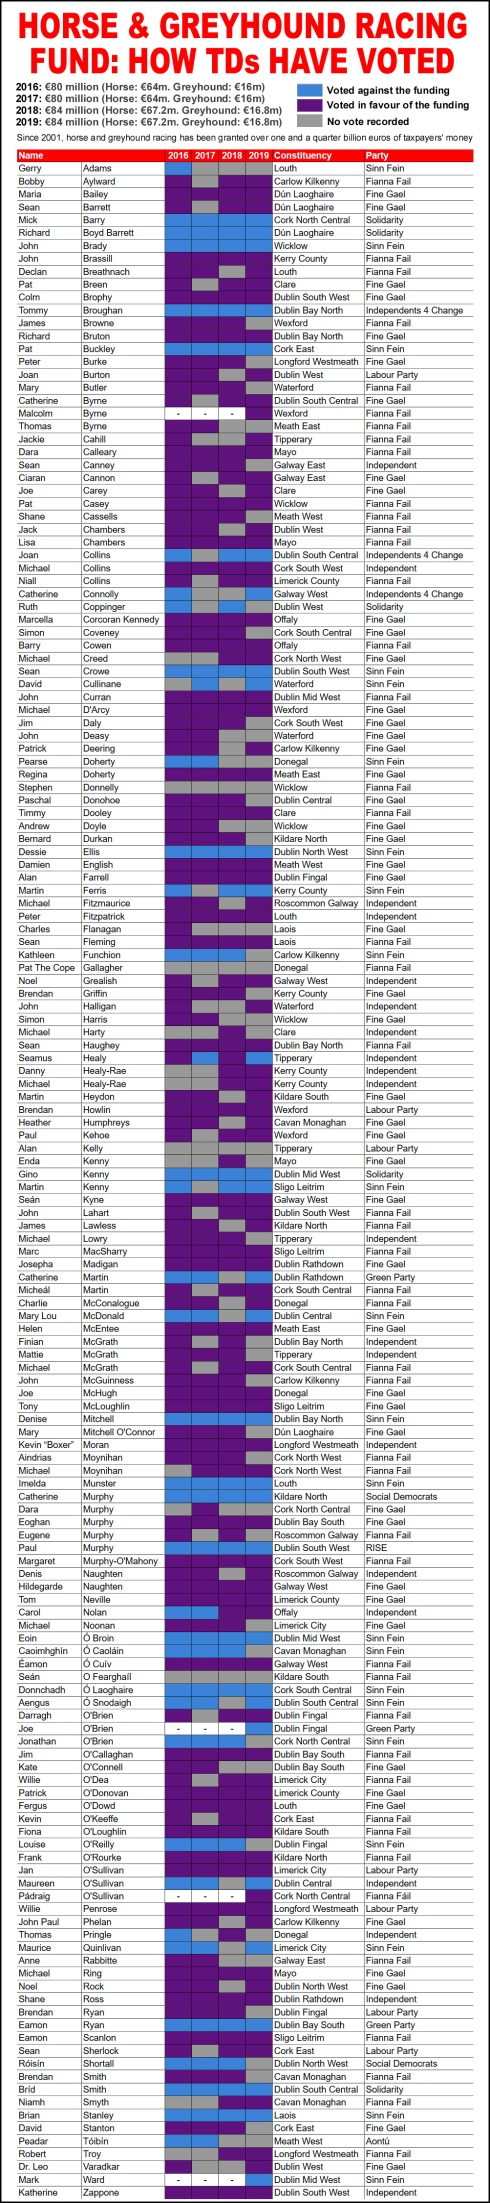 HOW THEY VOTED HGF 2016 TO 2019 copy